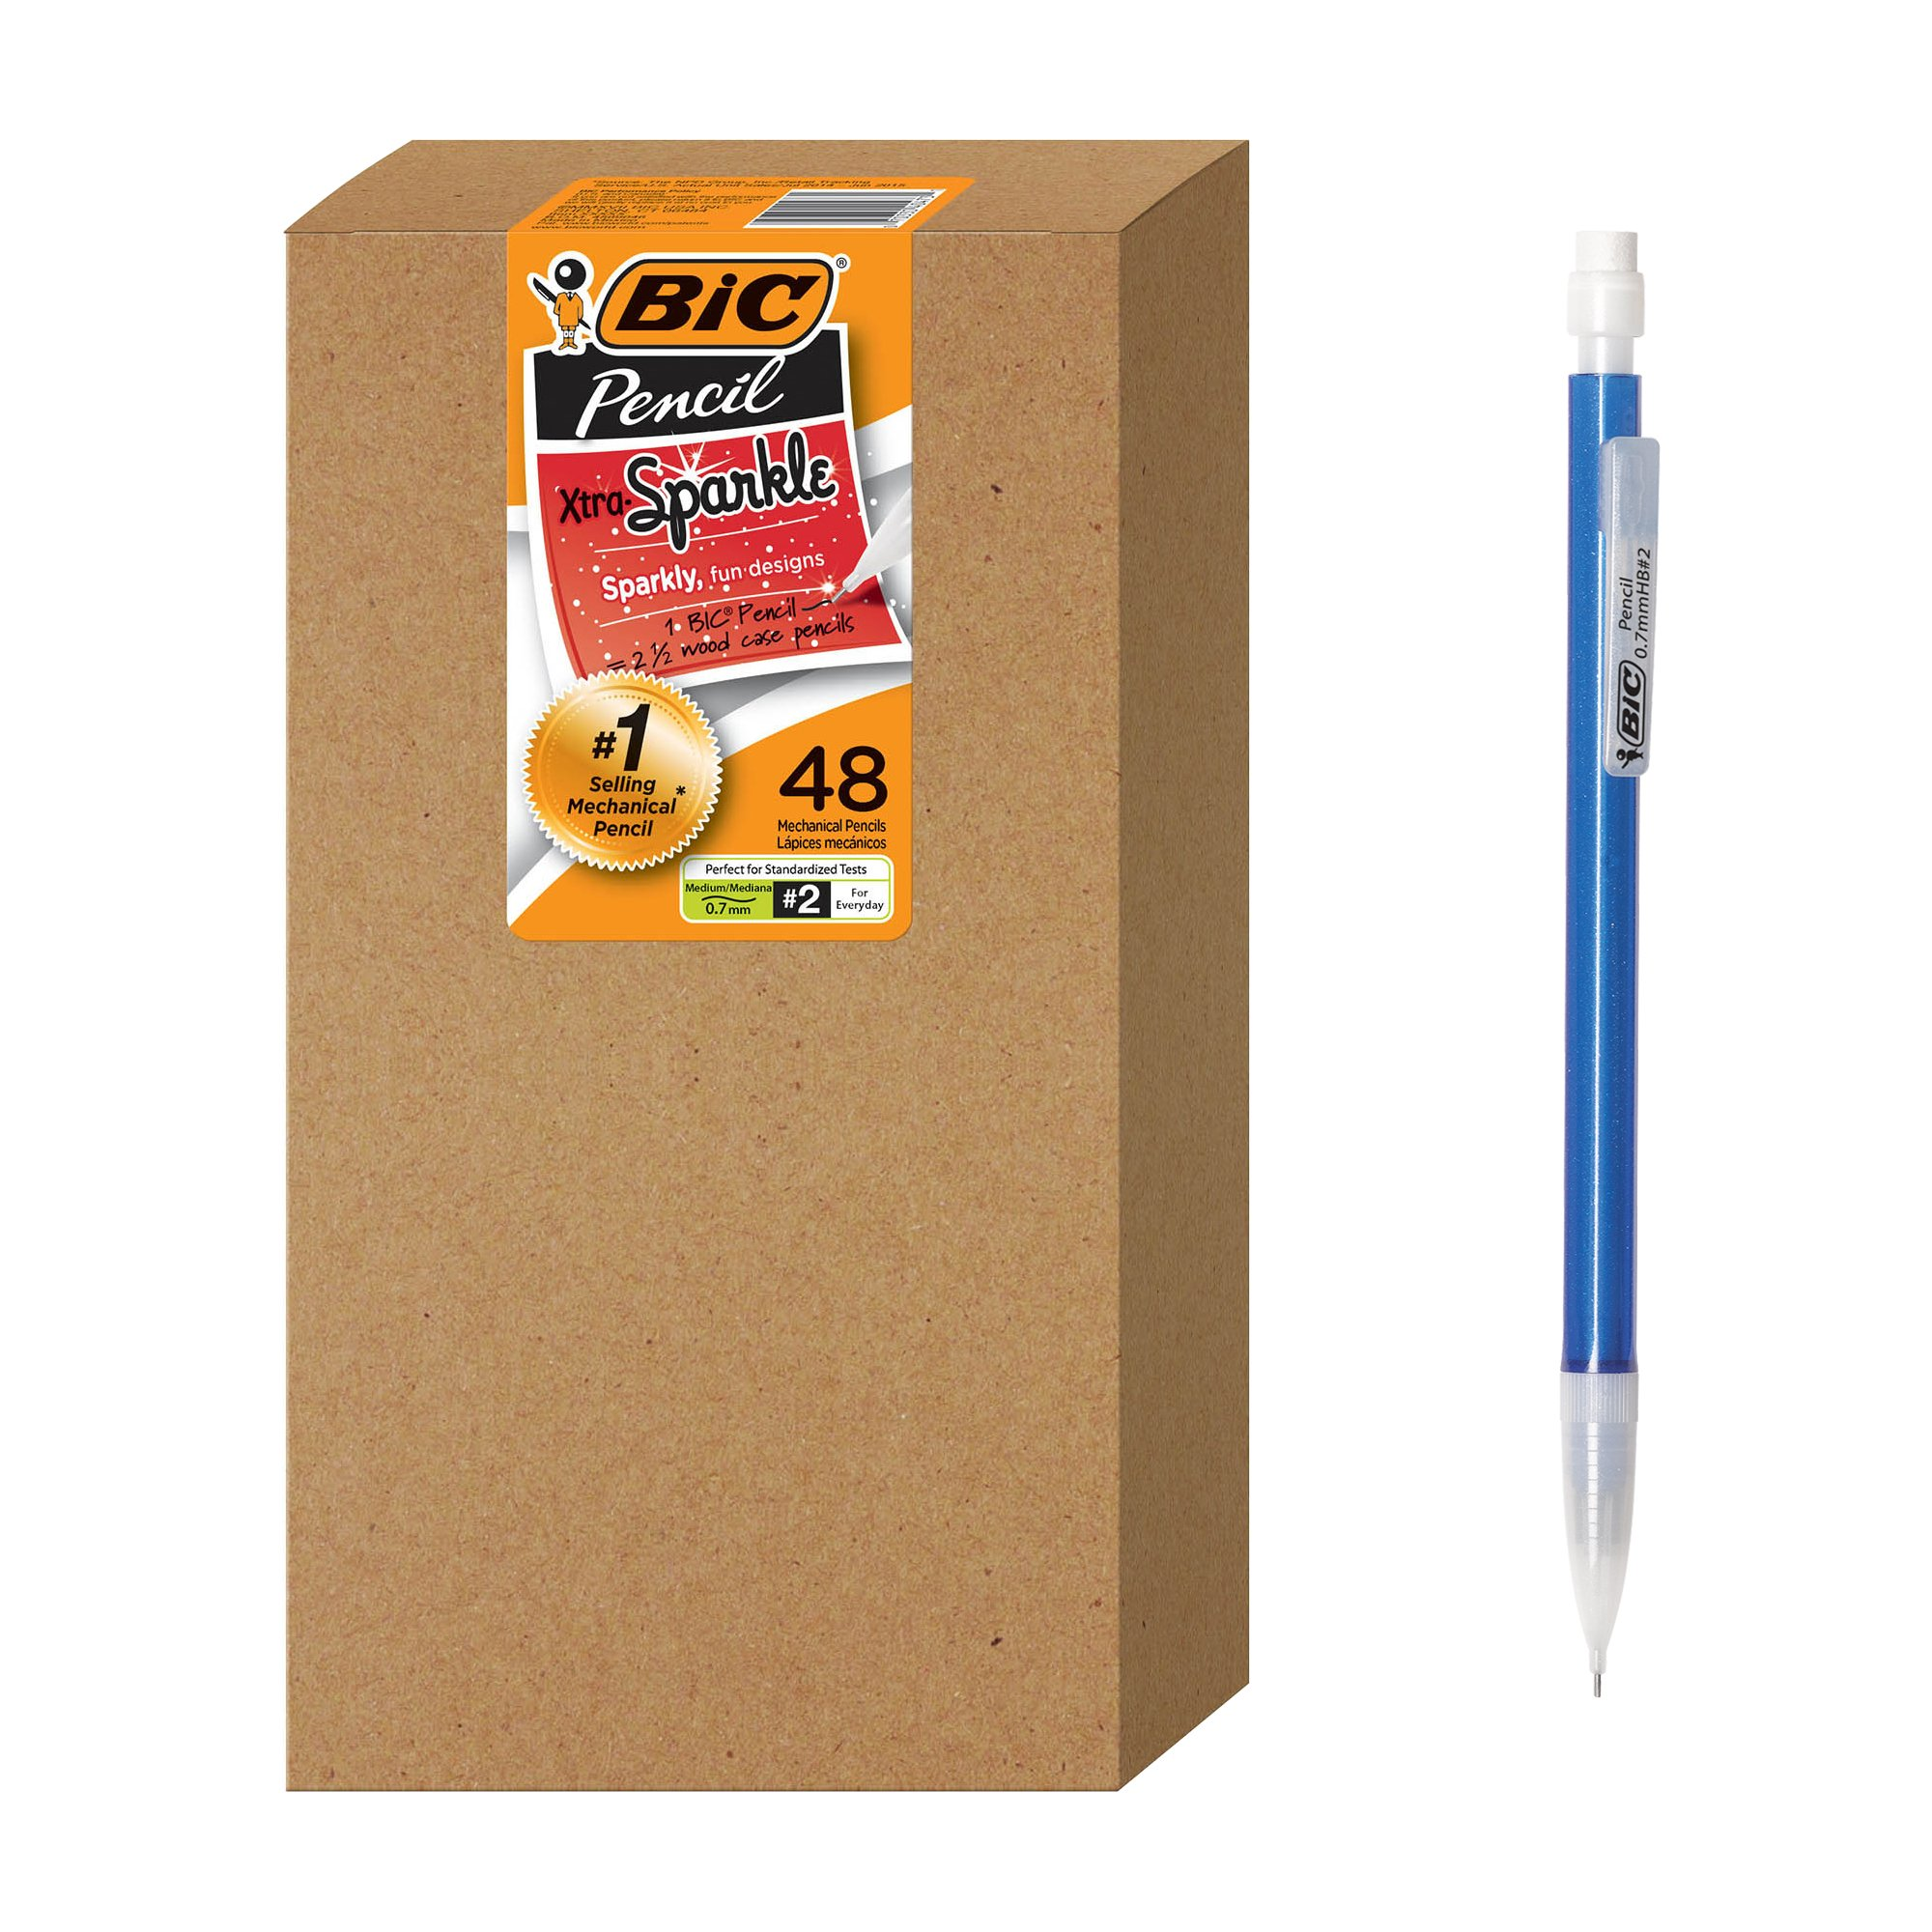 BIC Xtra Sparkle Mechanical Pencil, Colorful Barrel, Medium Point (0.7 mm), 48-Count by BIC (Image #1)